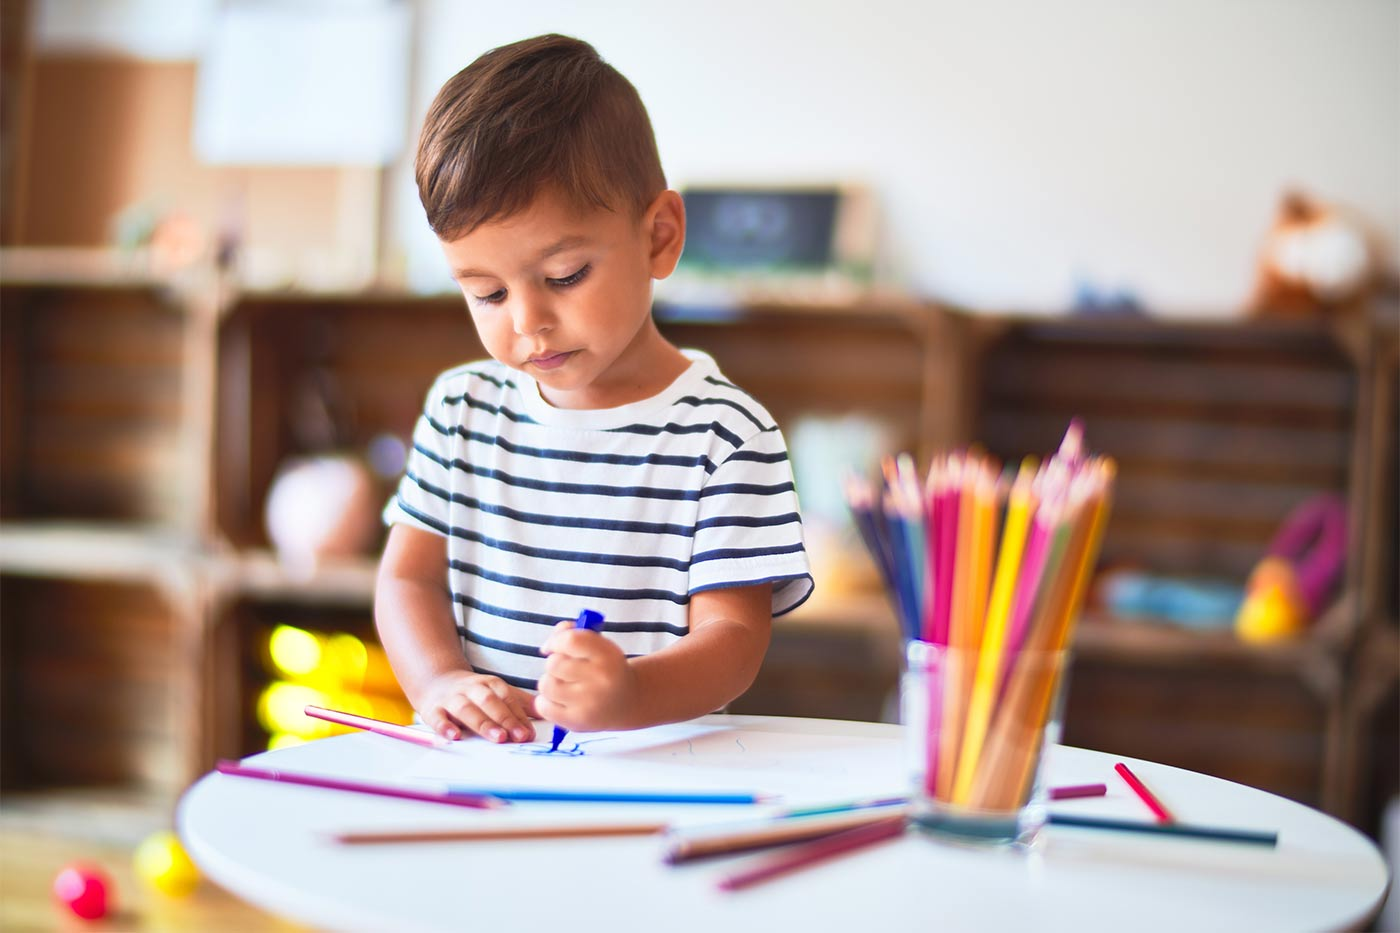 Toddler drawing pictures